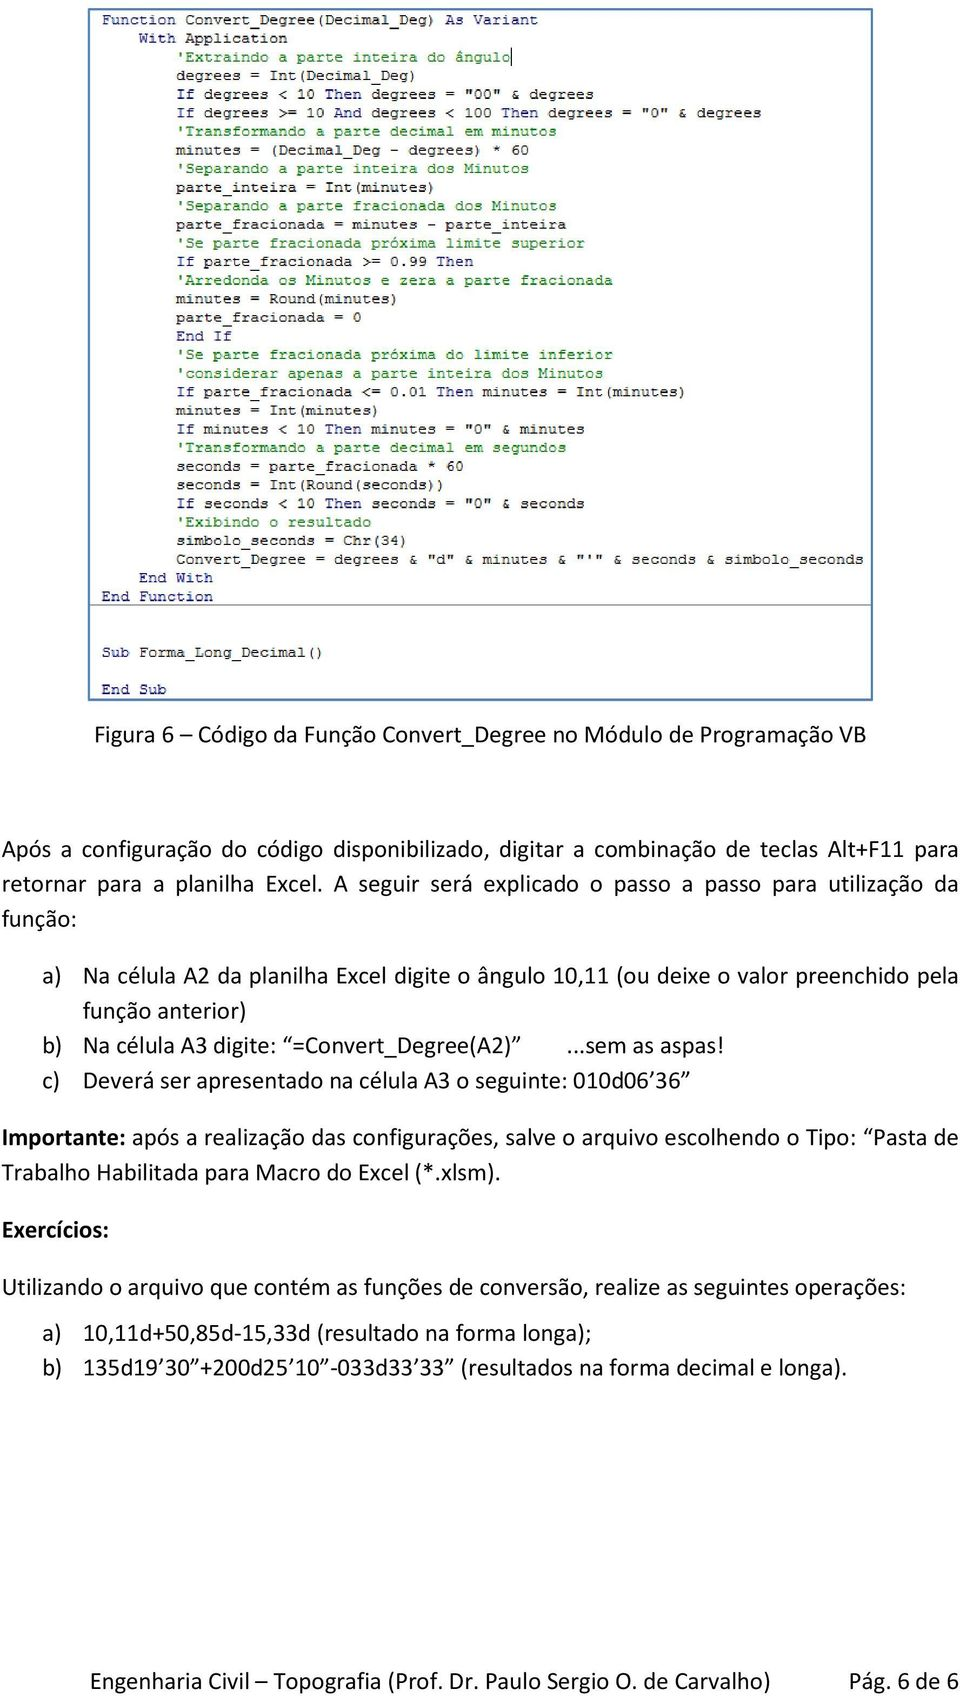 =Convert_Degree(A2)...sem as aspas!